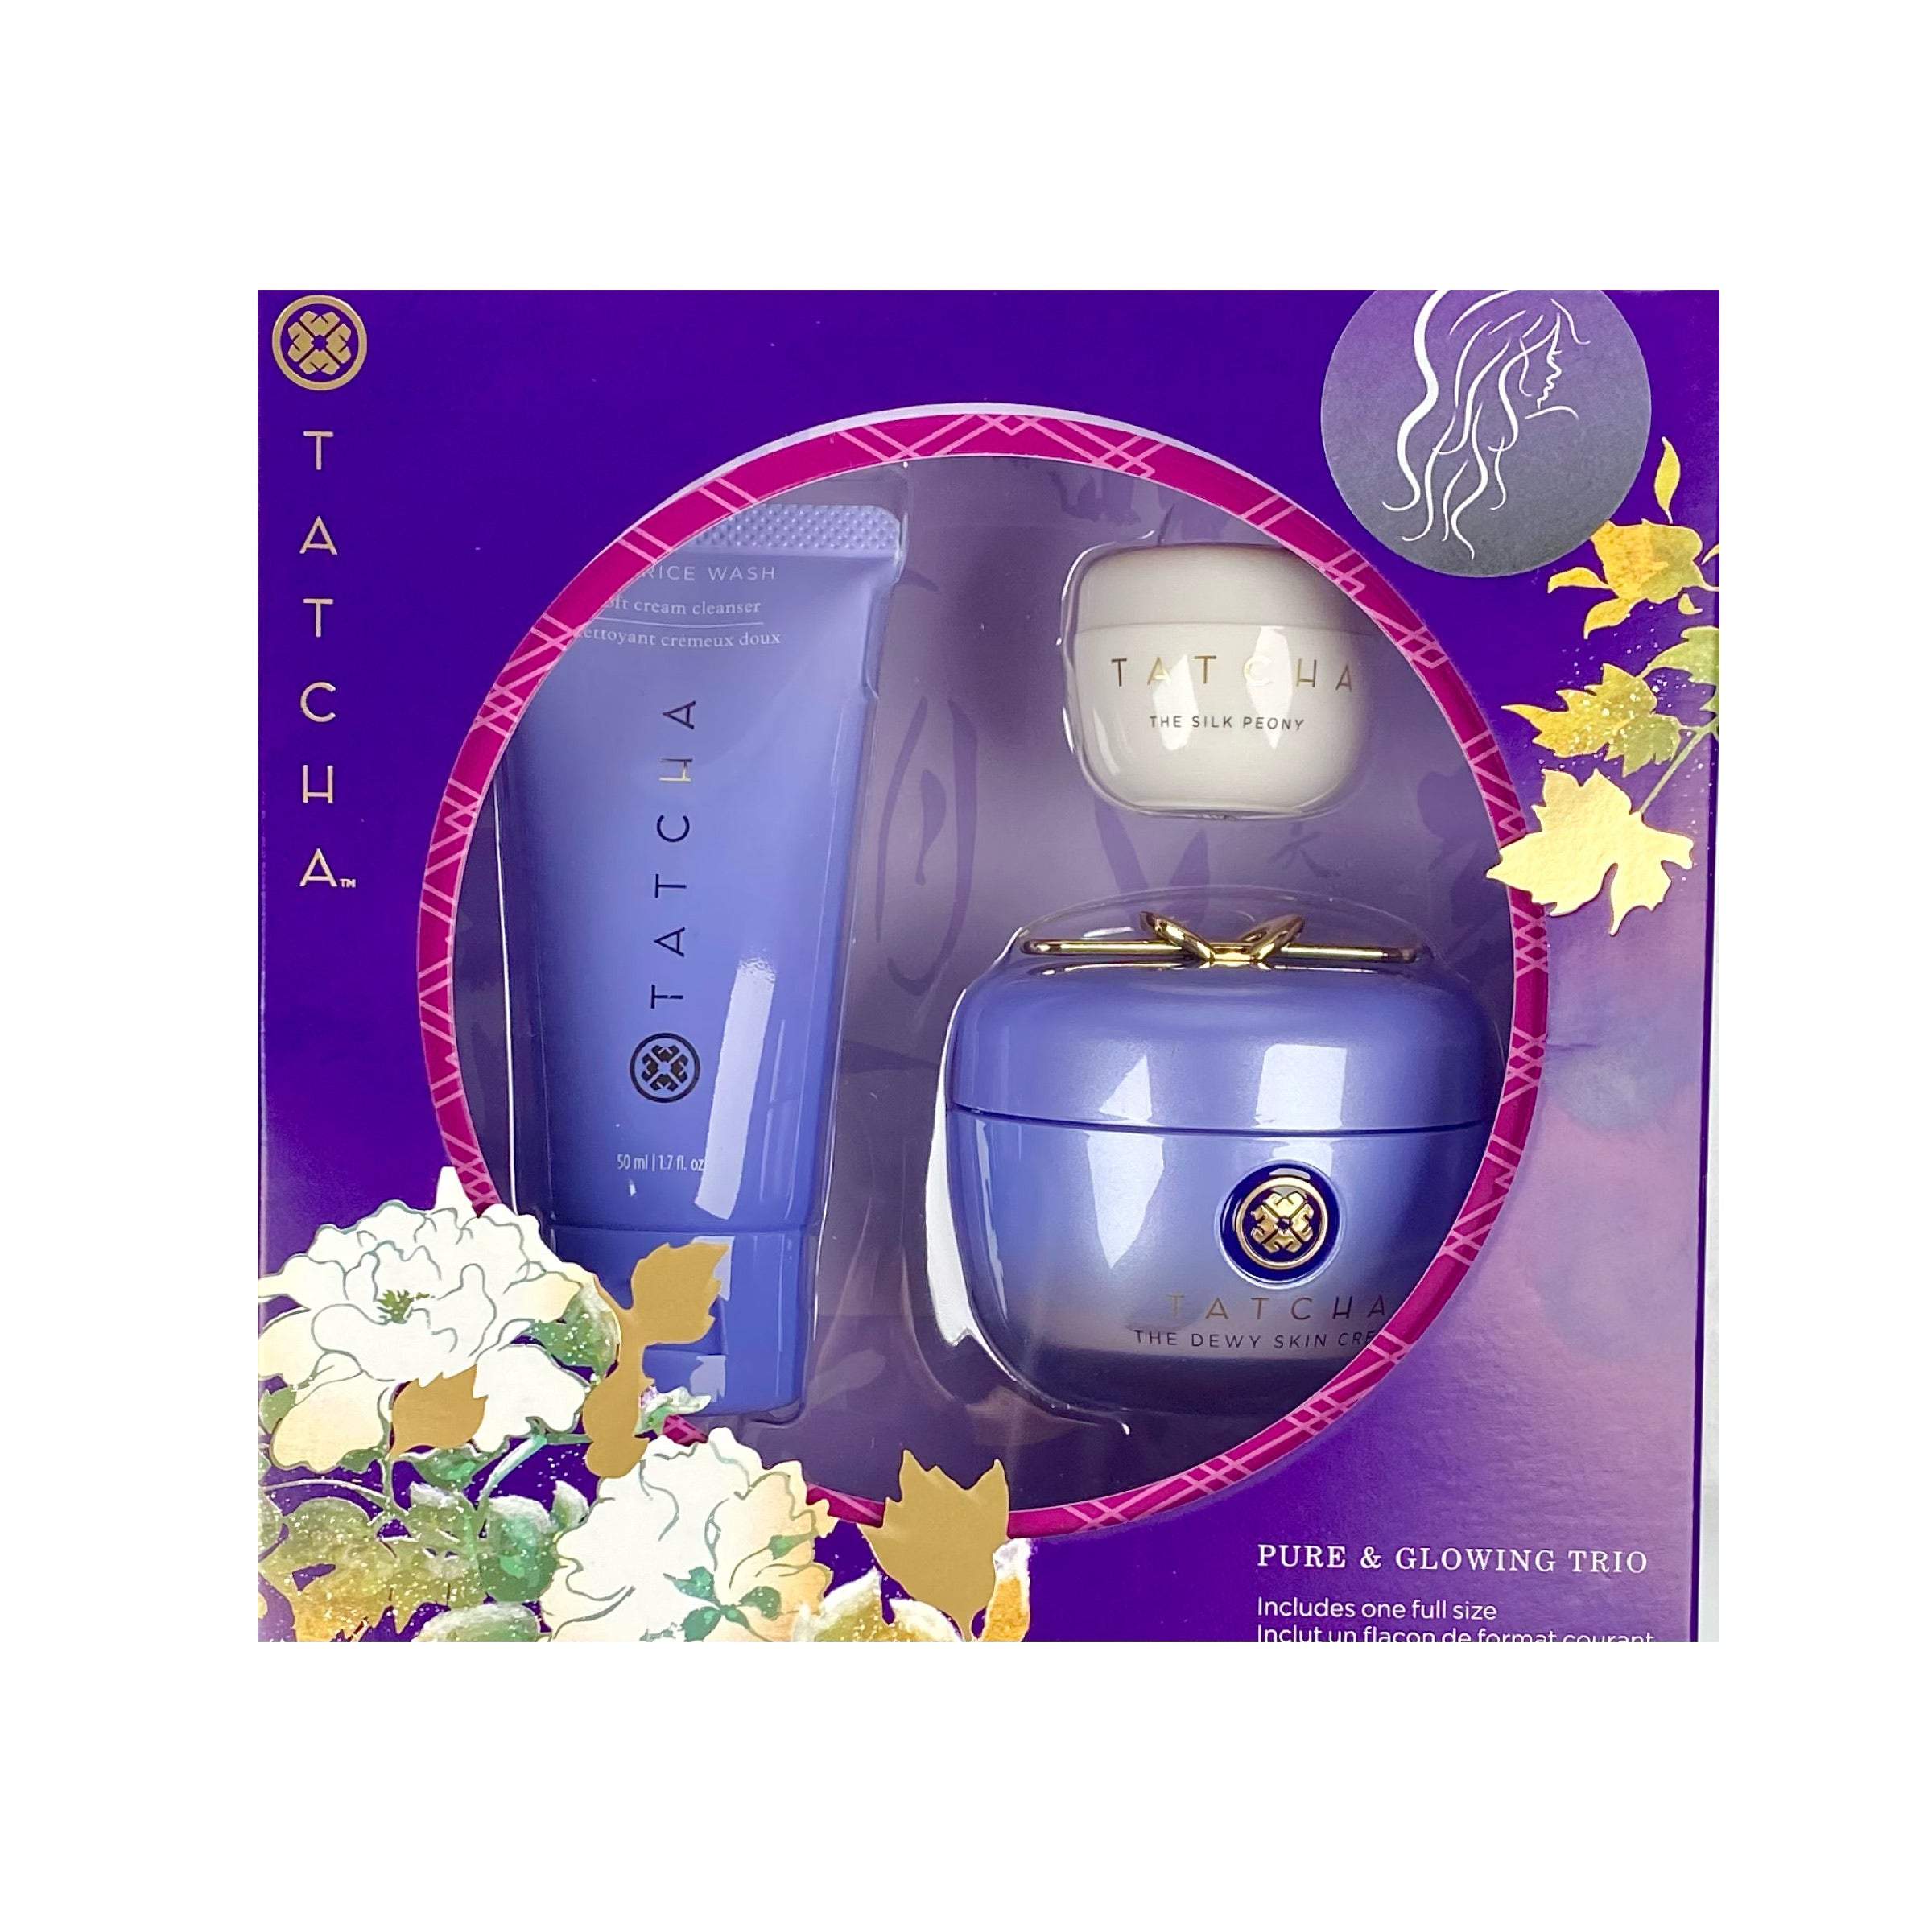 TATCHA Pure & Glowing Trio - Limited Edition, Gift Sets, London Loves Beauty